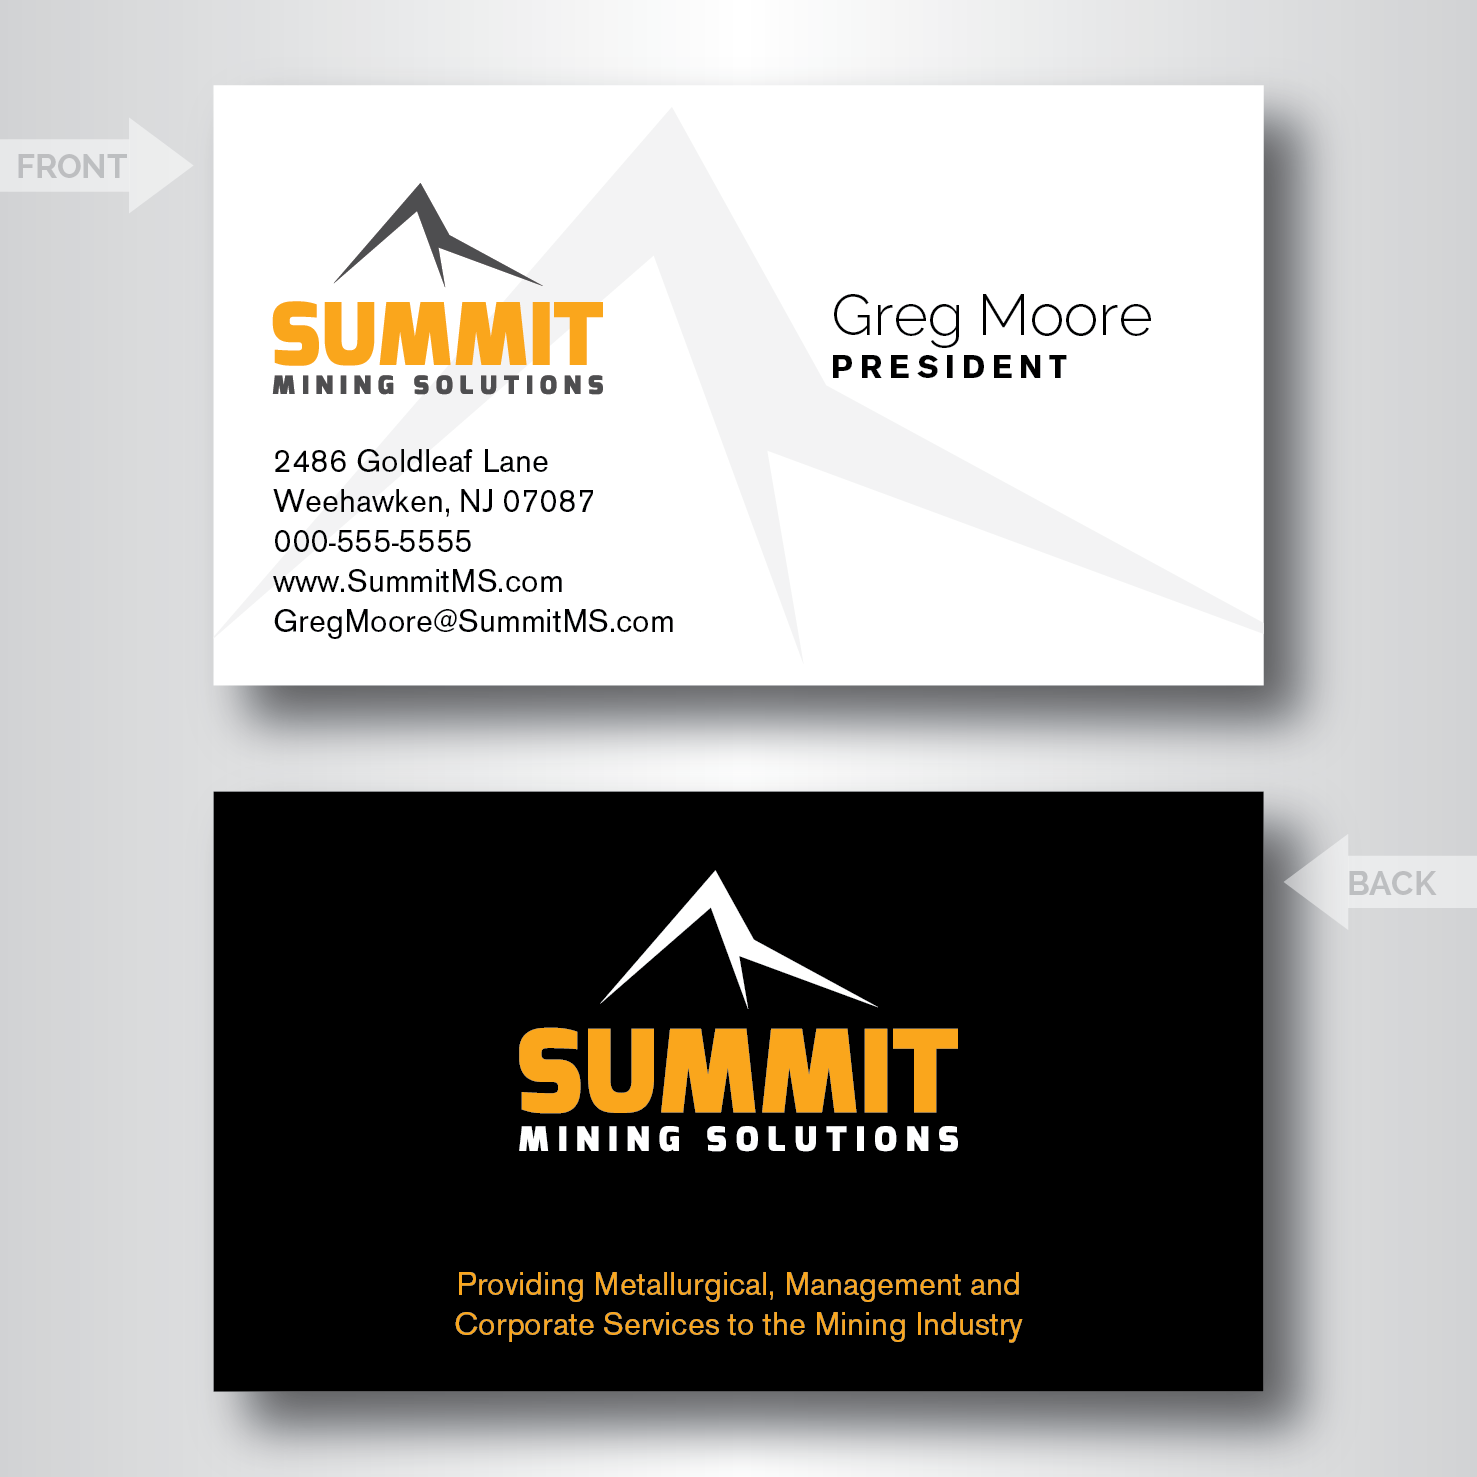 Mining business card design for a company by dotnot design 4673236 business card design by dotnot for this project design 4673236 reheart Choice Image